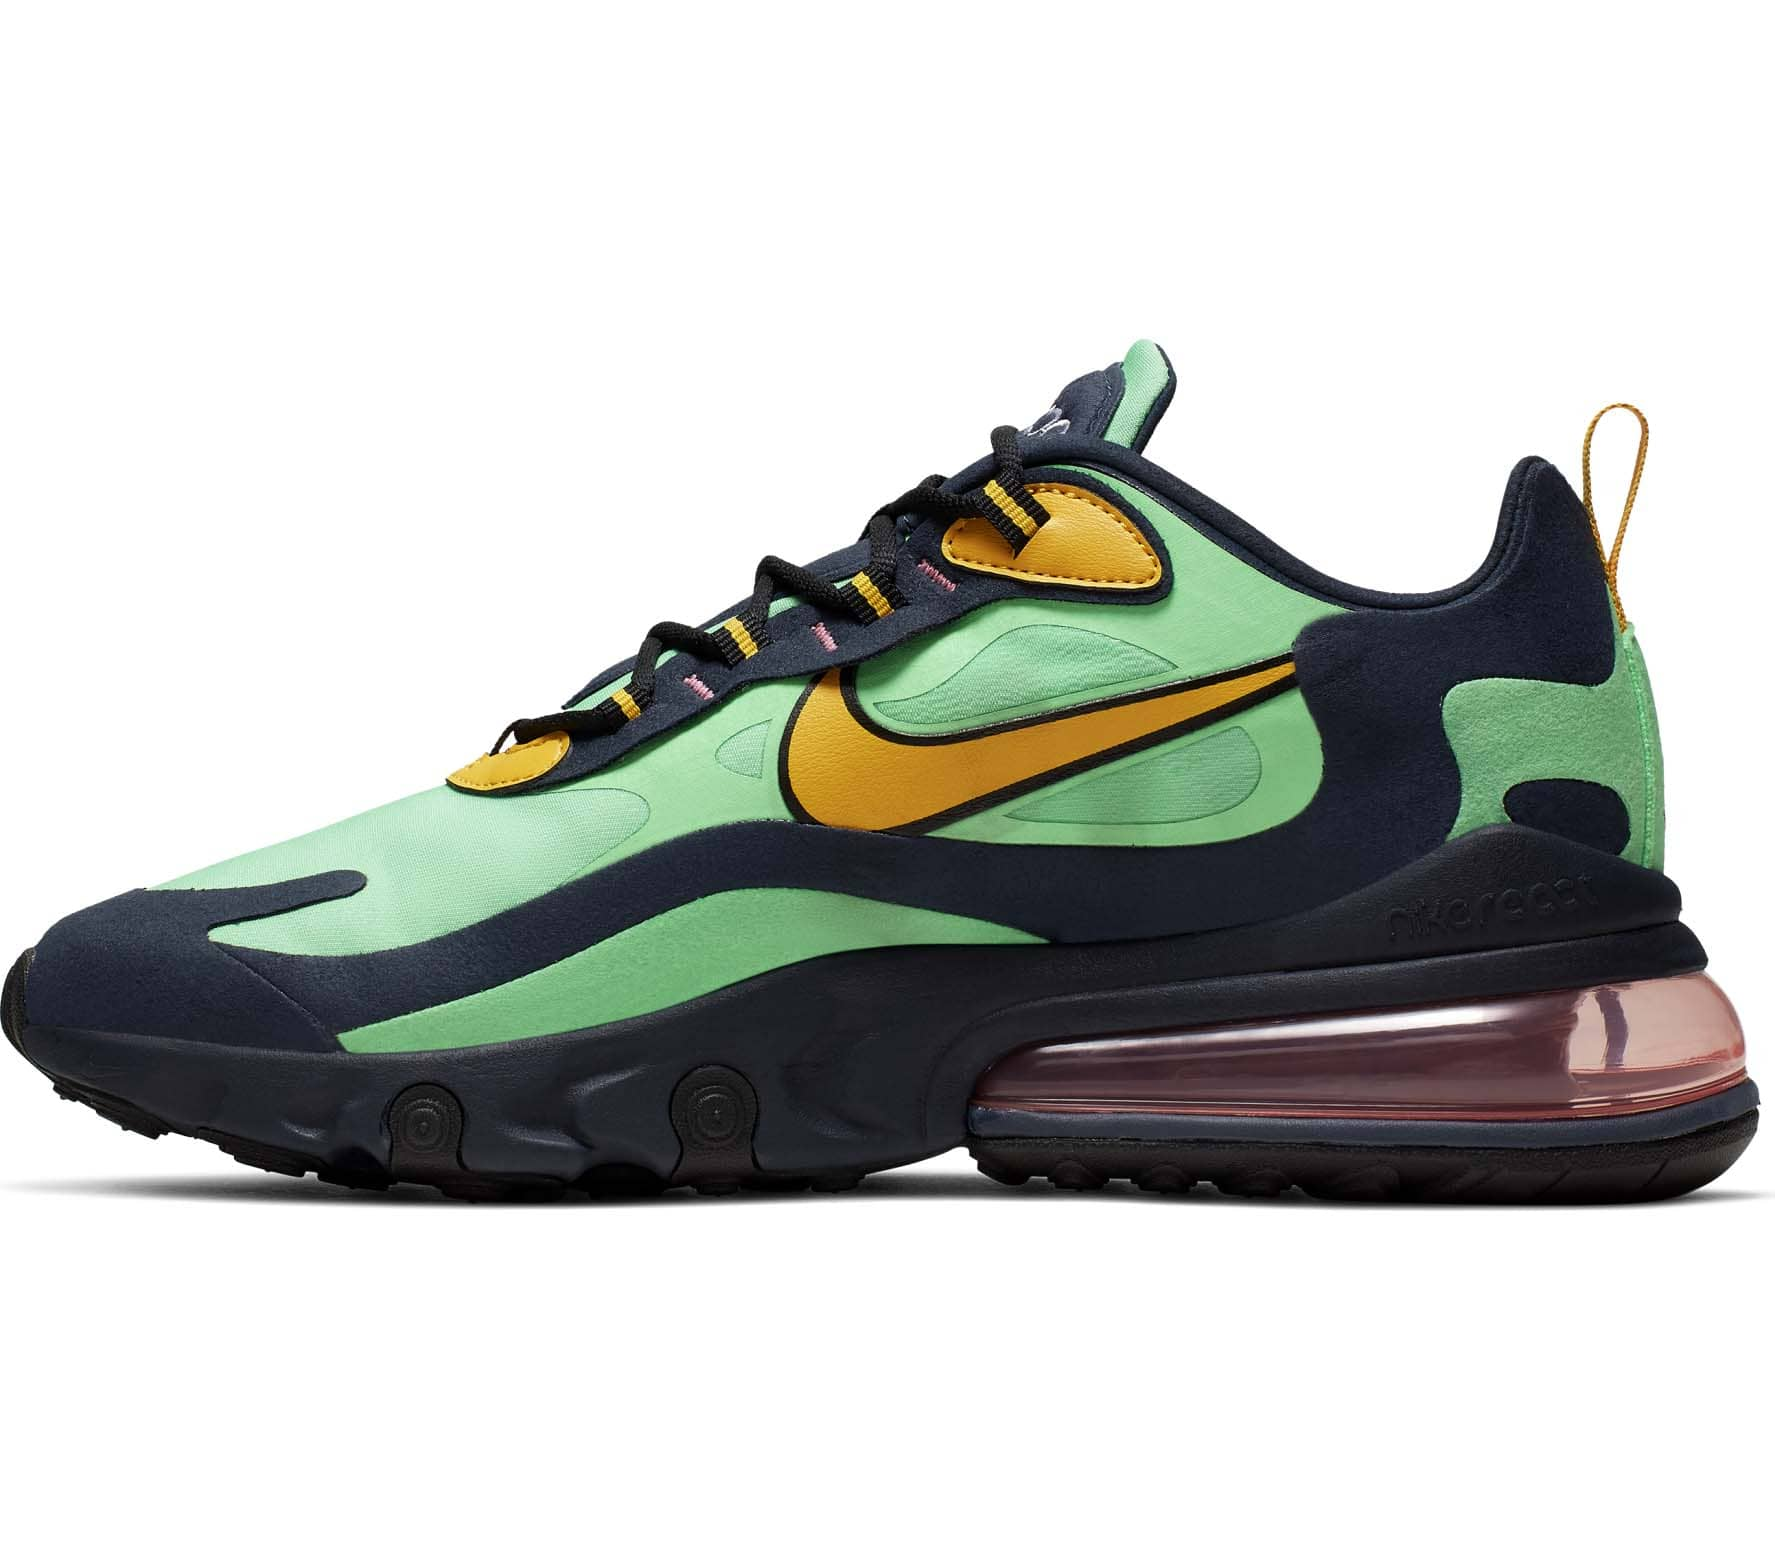 buy popular ca076 a7270 Nike Sportswear Air Max 270 React Herren Sneaker grün